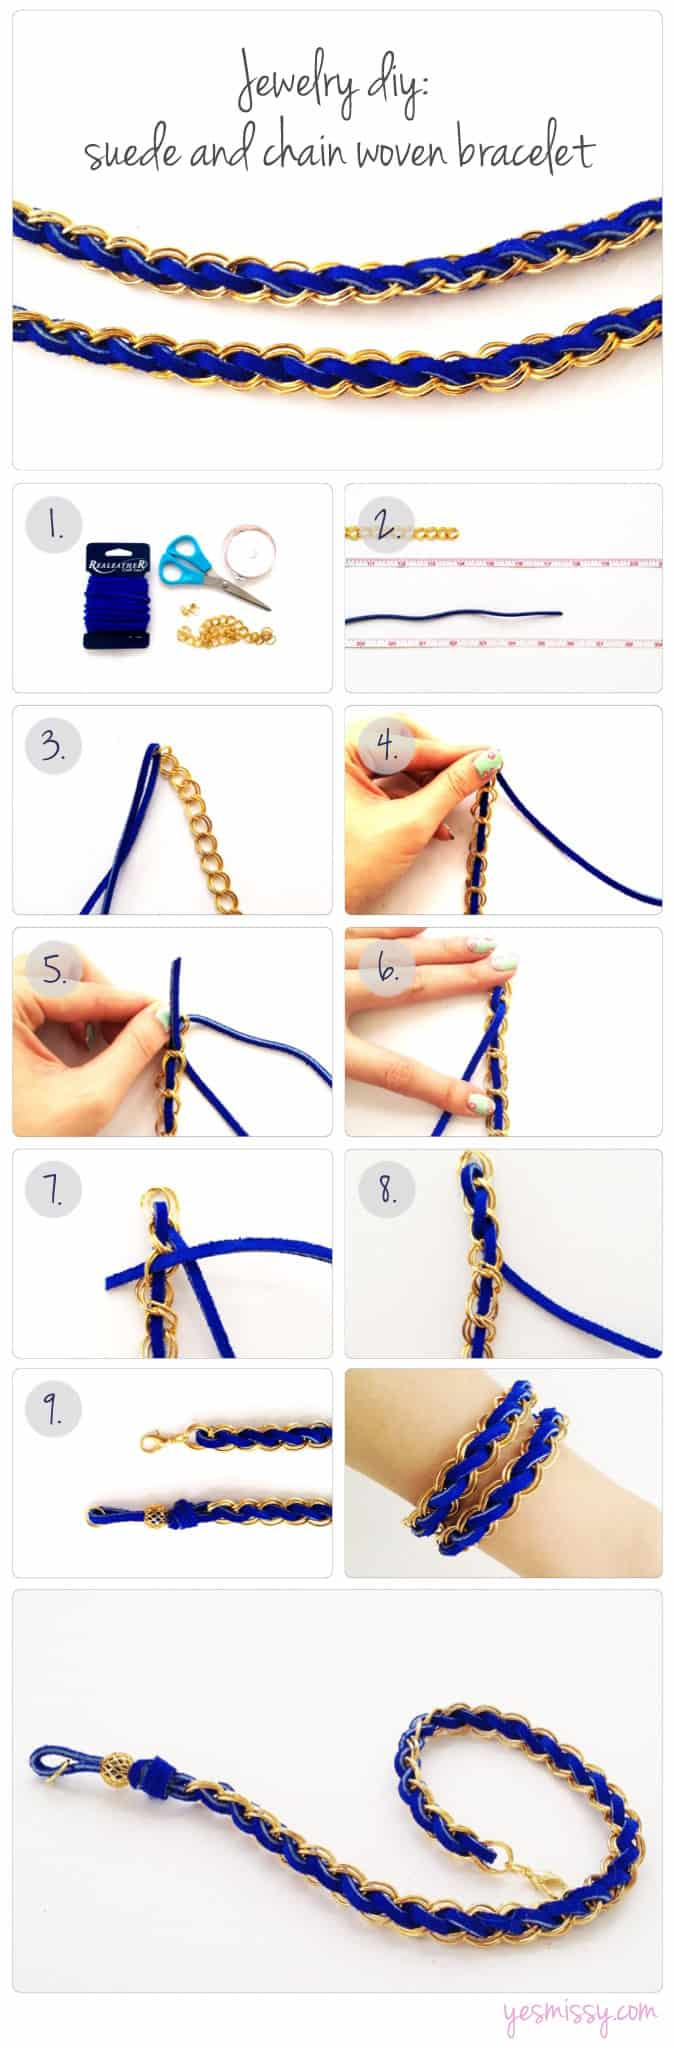 Jewelry DIY: Chain and Suede Woven Bracelet DIY part 2